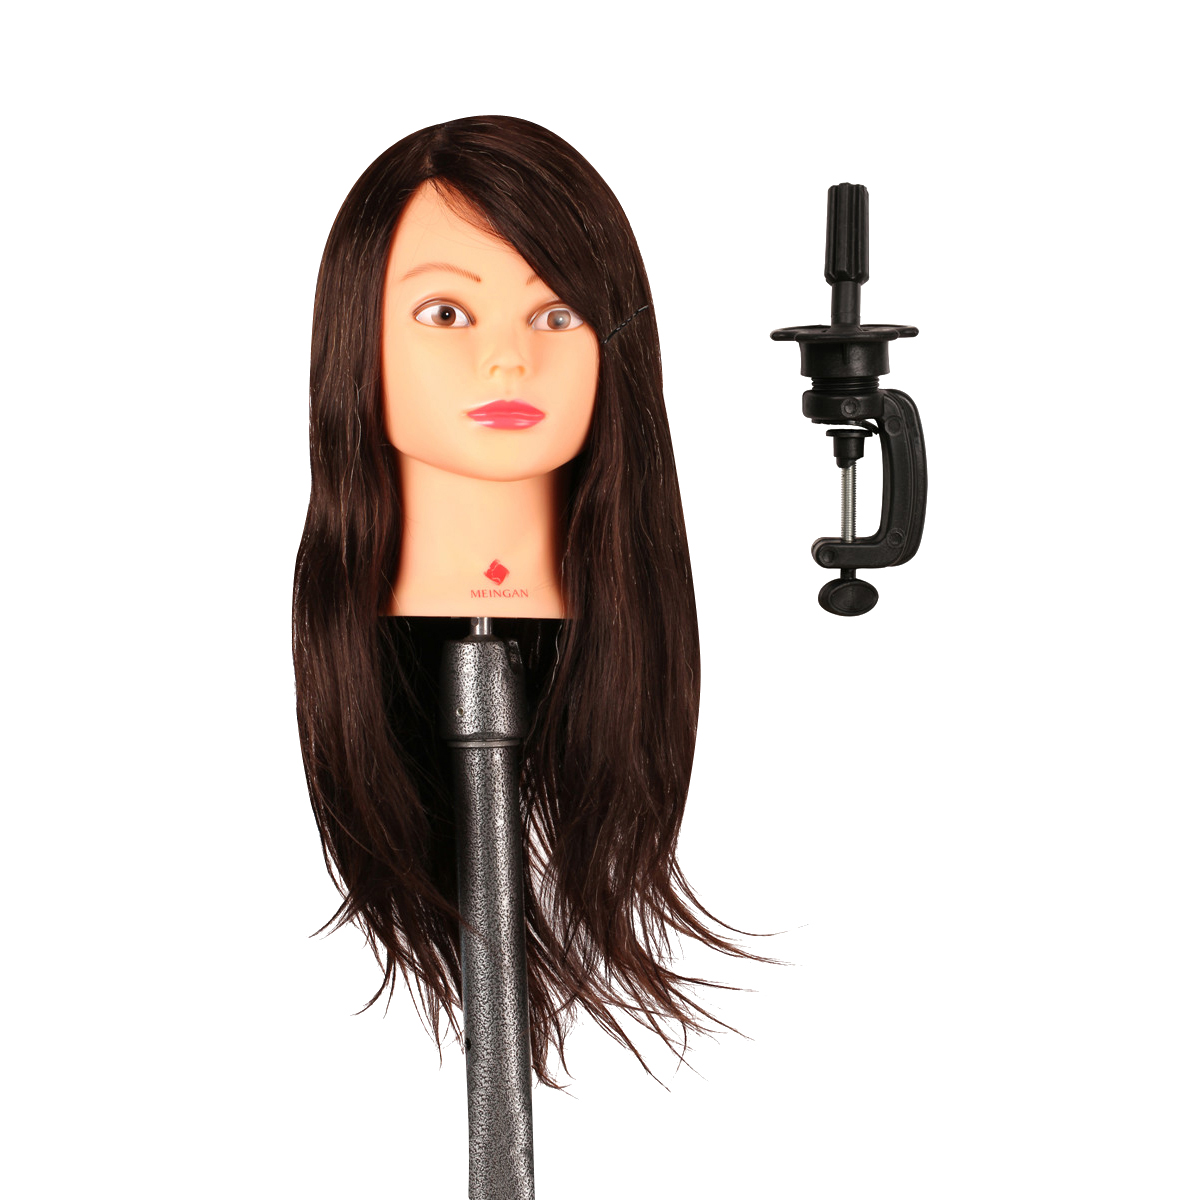 Professional Salon 40% Natural Animal Brown Wig Hair 22 Long Hairdressing Styling Training Mannequin Head with Clamp Stand Tool parrucca perruque dyz 516 lolita long dark brown anime cosplay hair wig natural hair wigs